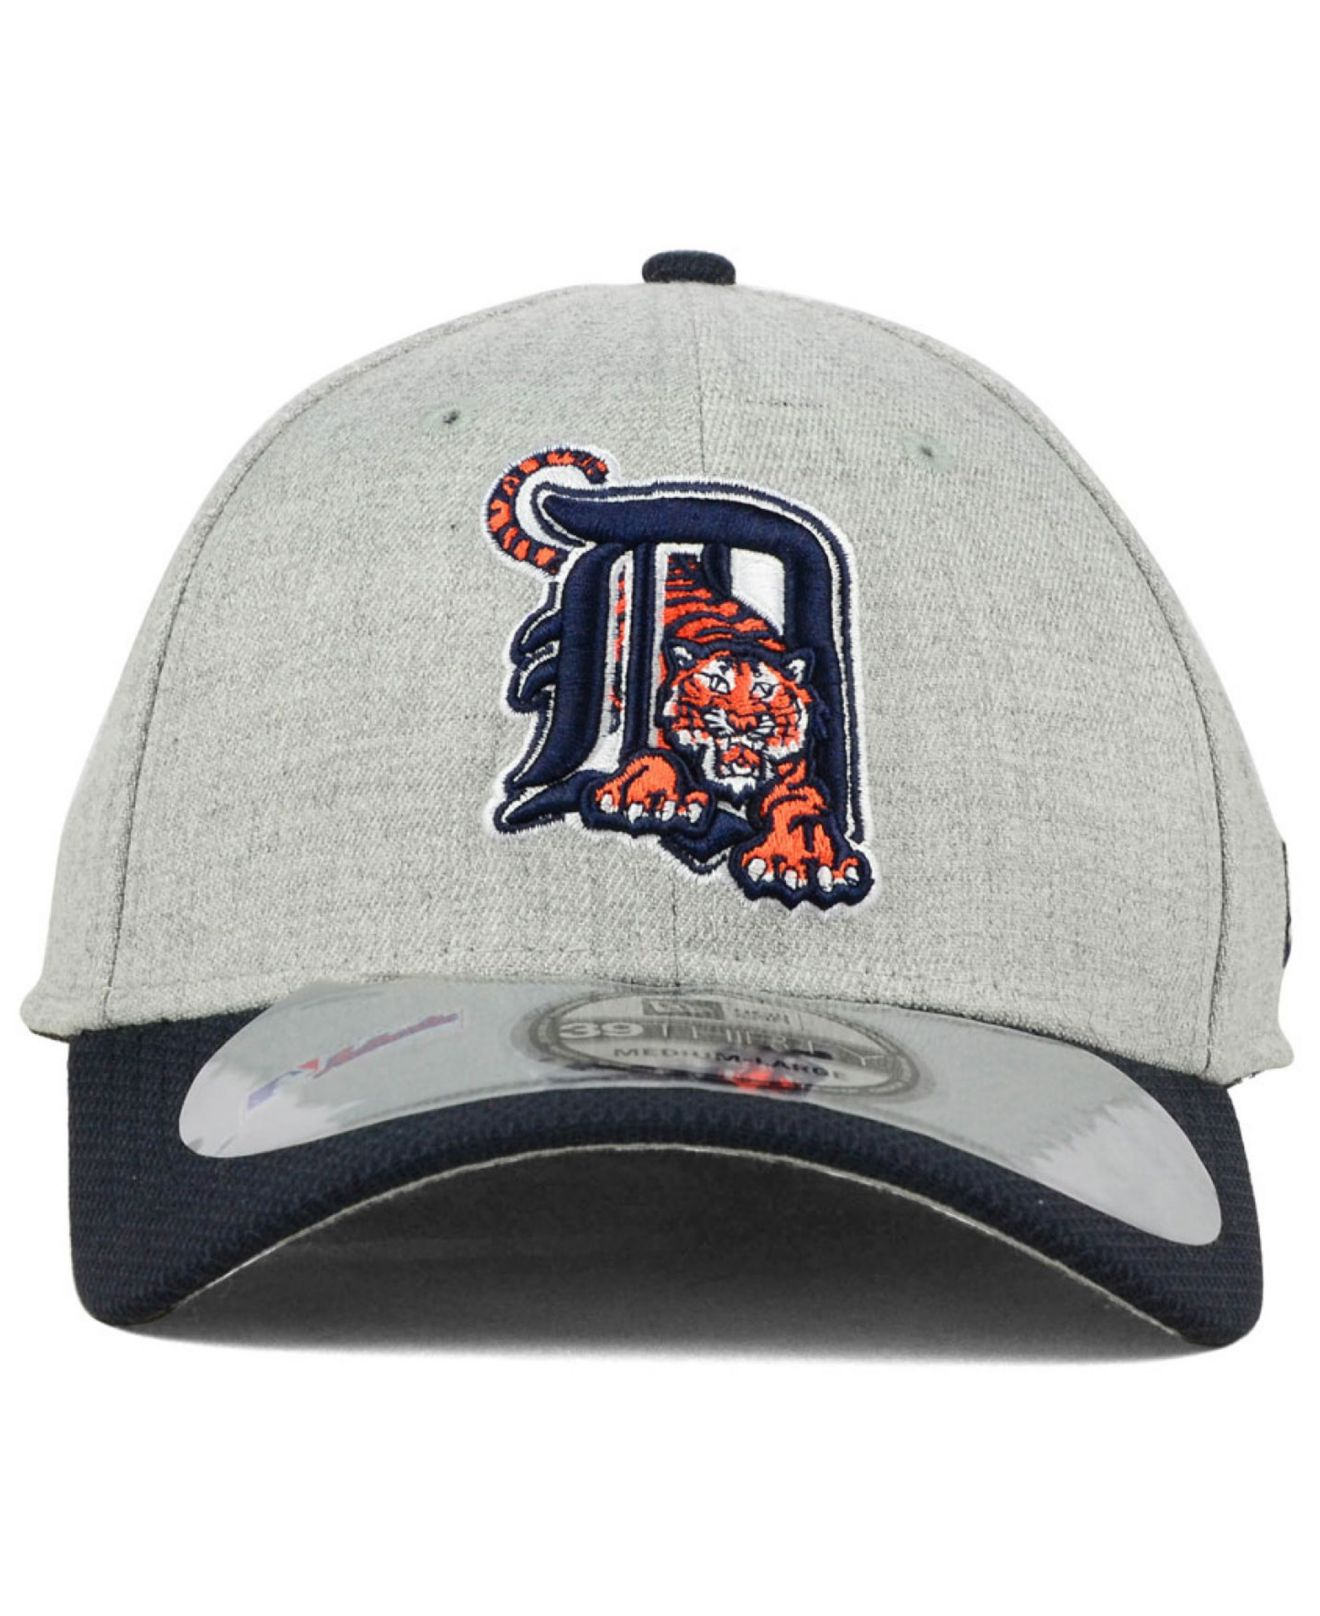 on sale 3d113 339d7 ... get lyst ktz detroit tigers clubhouse 39thirty cap in gray for men  c2ed9 ae587